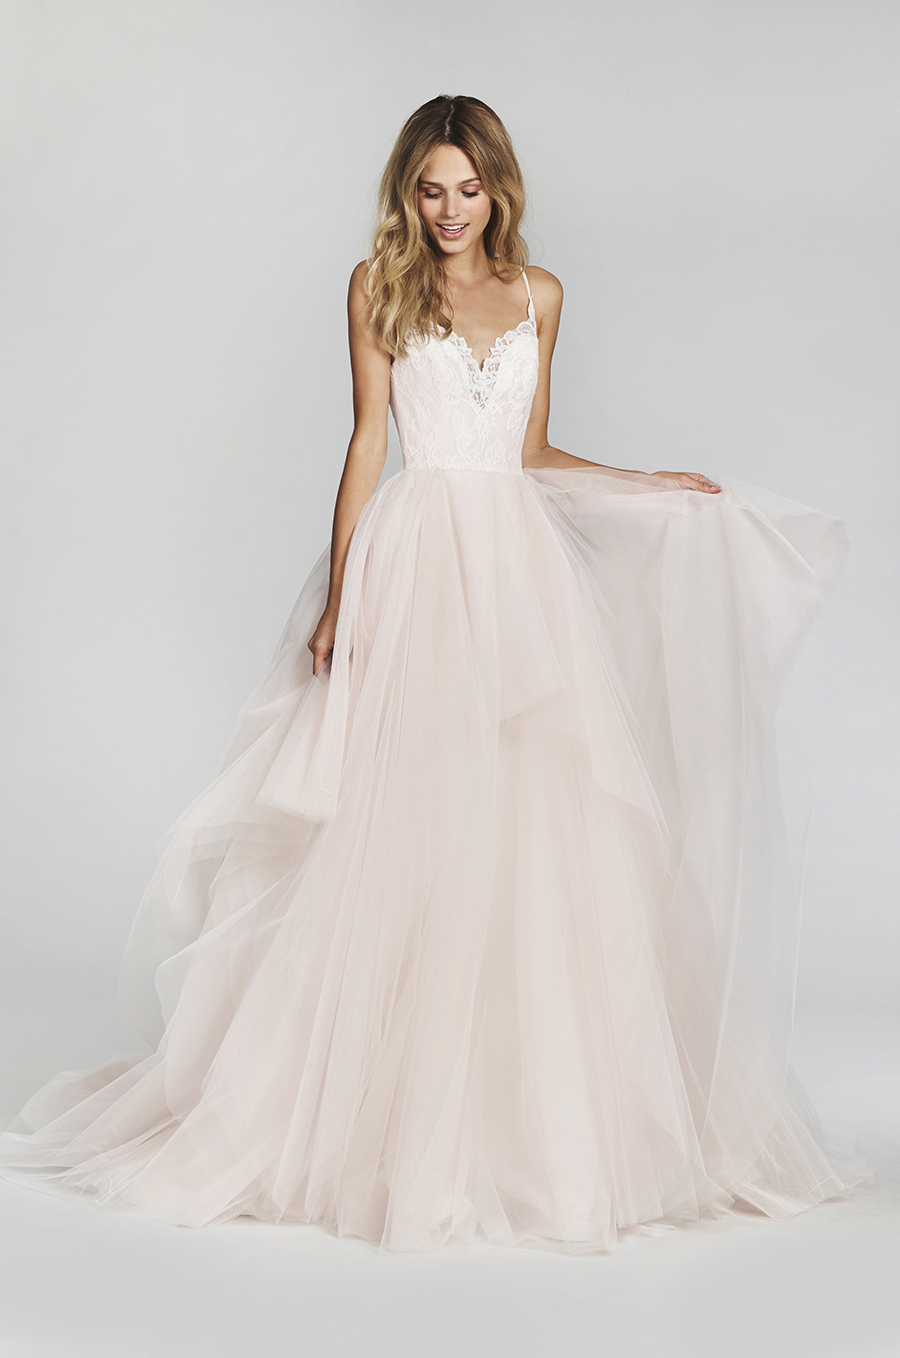 Blush By Hayley Paige Spring 2017 Bridal Gown Collection